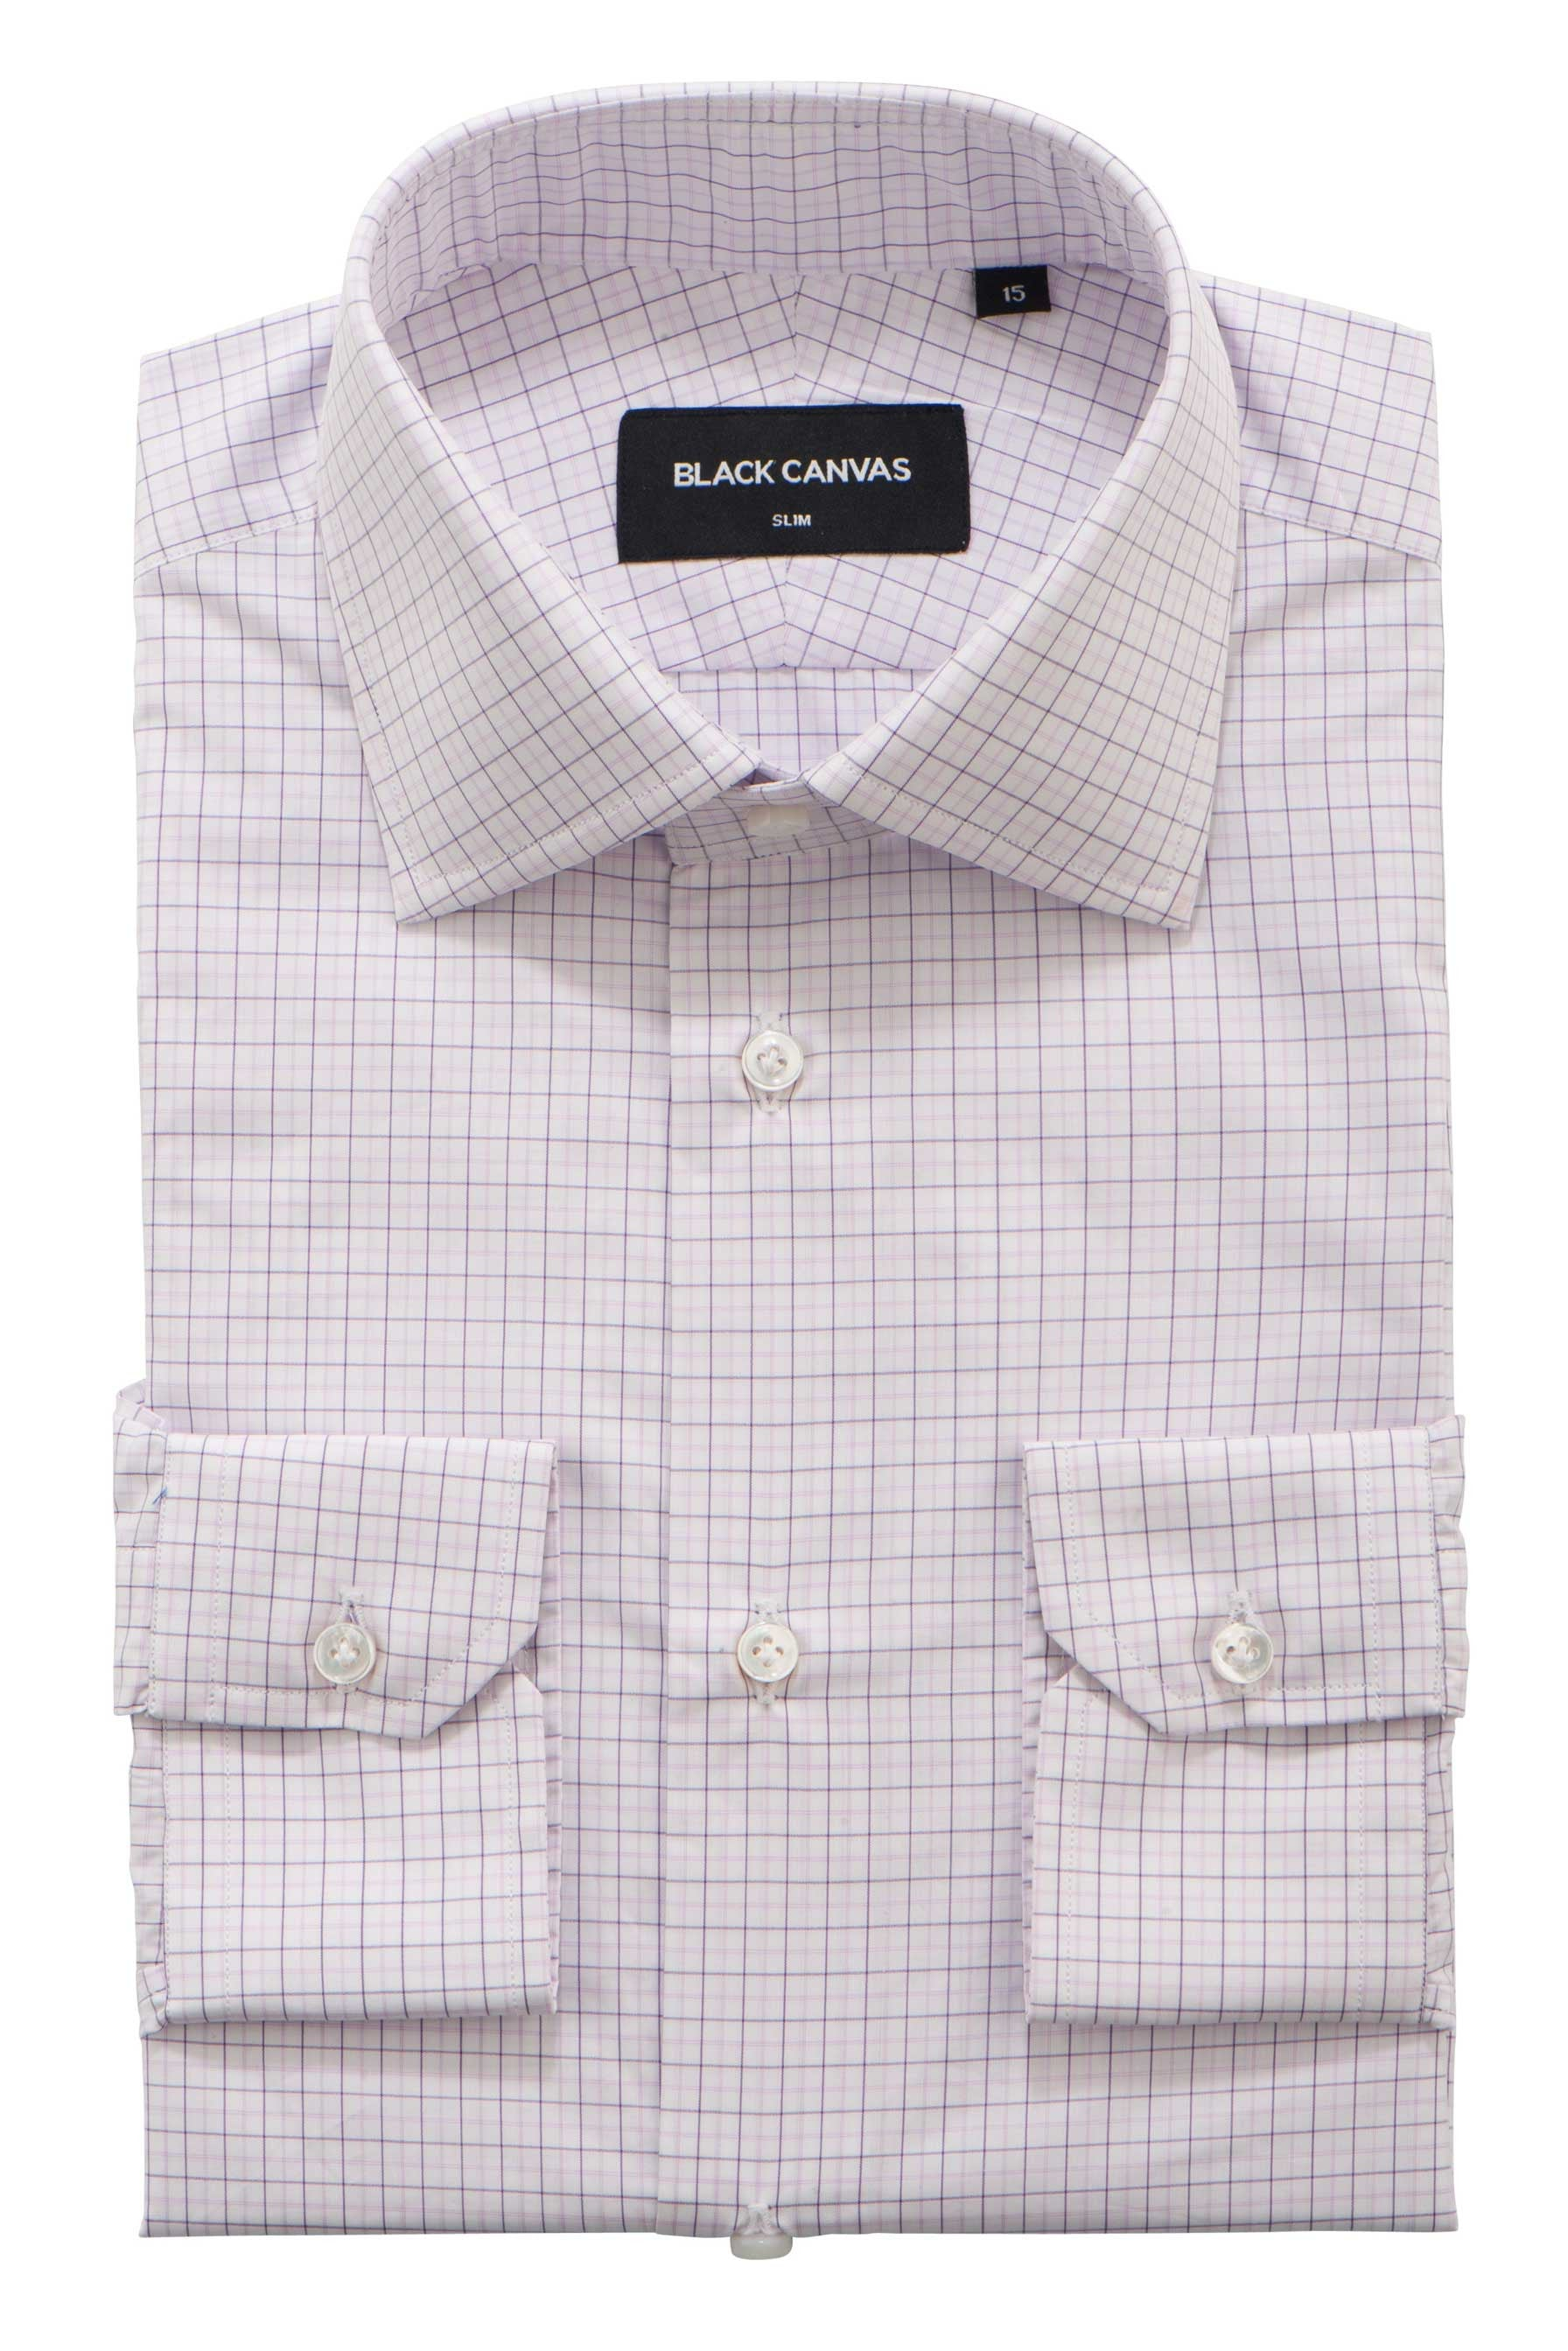 Purple Check Dress Shirt - Thomas Mason Goldline 140s